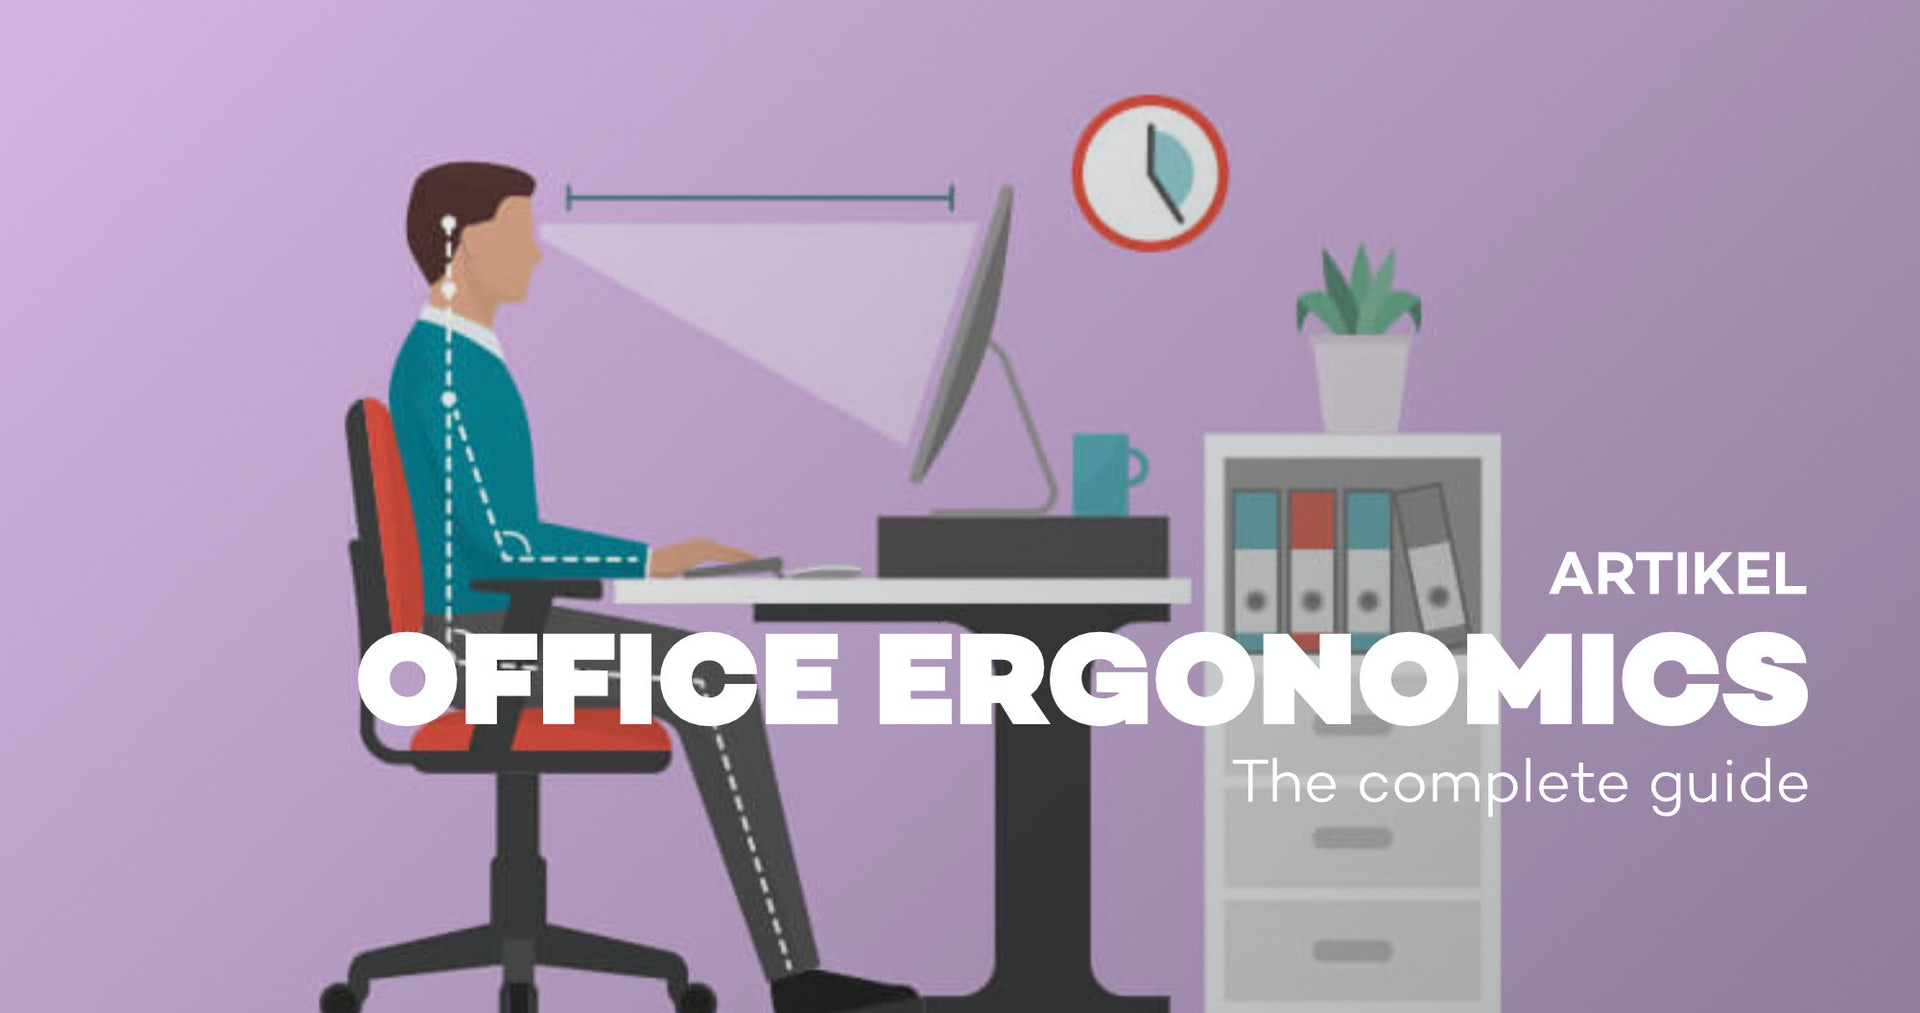 Office ergonomics - The complete guide